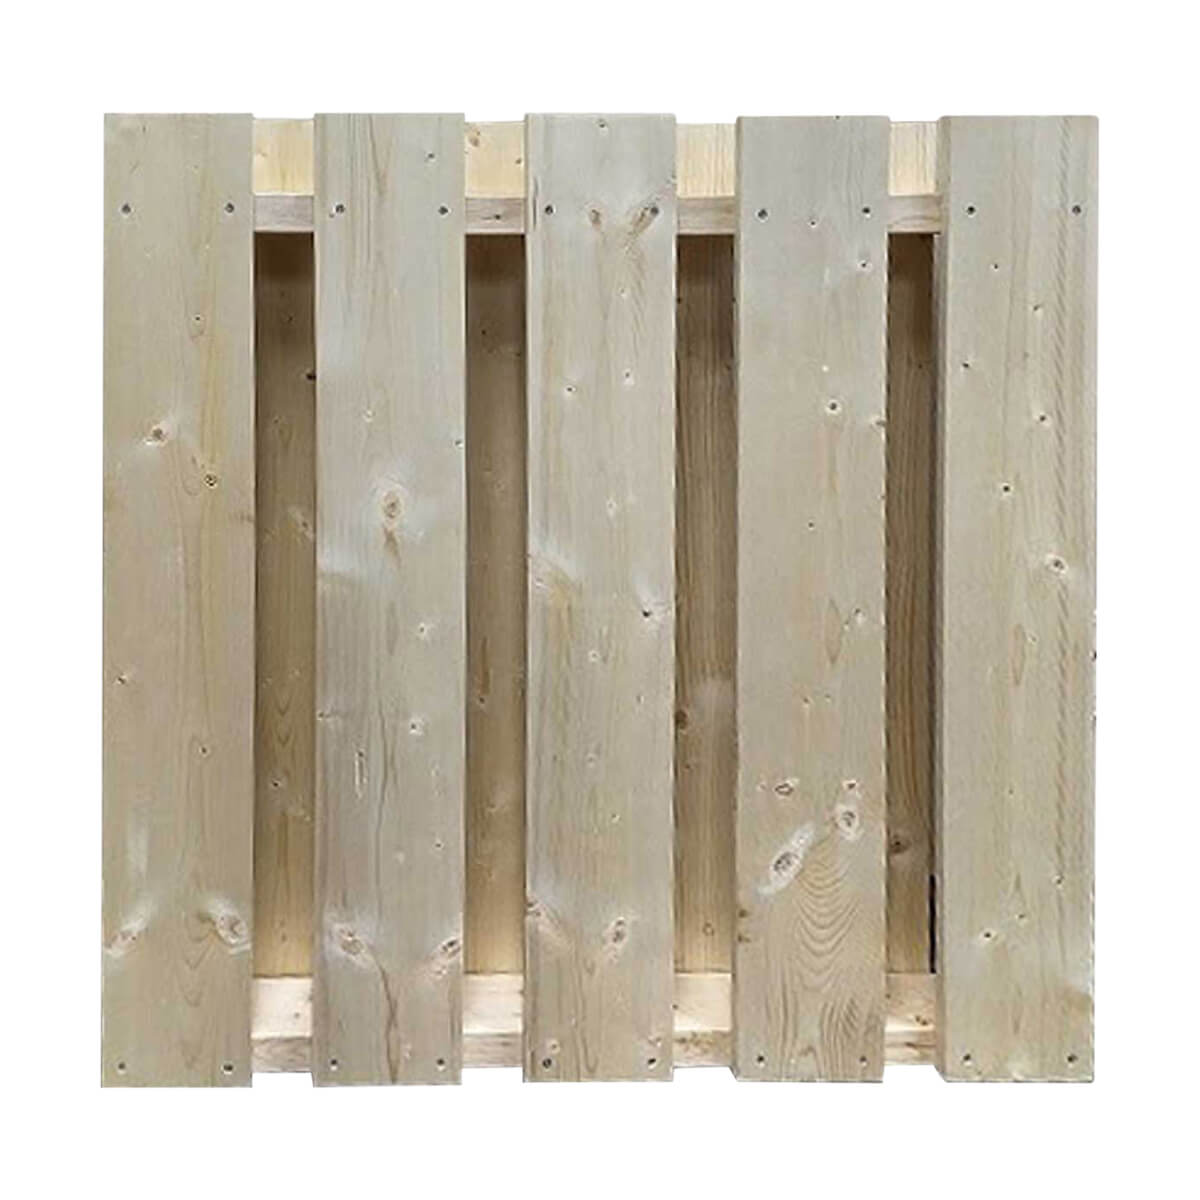 SPRUCE FENCE BOARD PREMIUM - 1X6X6-FT LUMBER<br/>